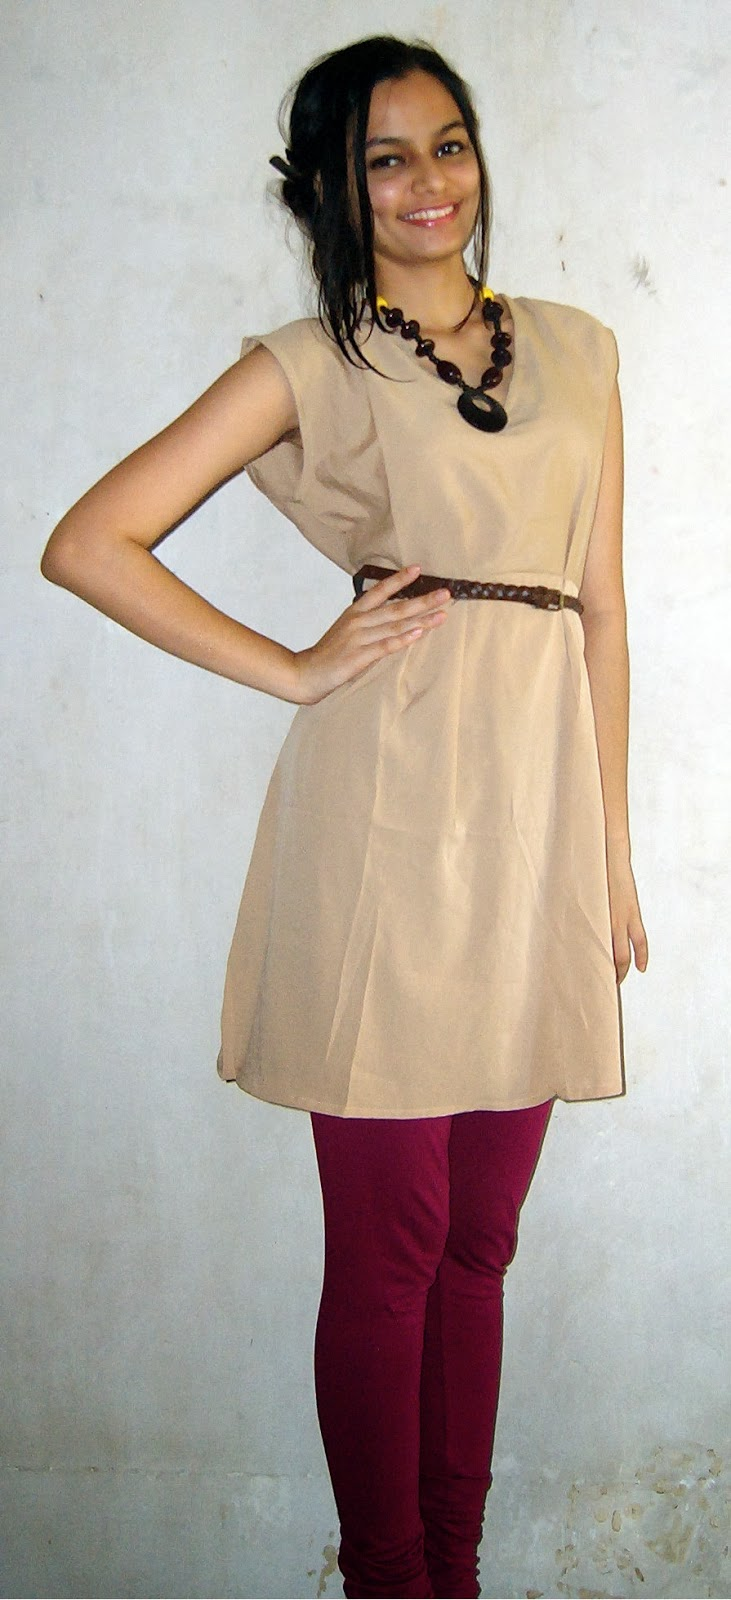 H&M Dress, knee-length shift dress, camel colored dress, fuschia leggings, bohemian look